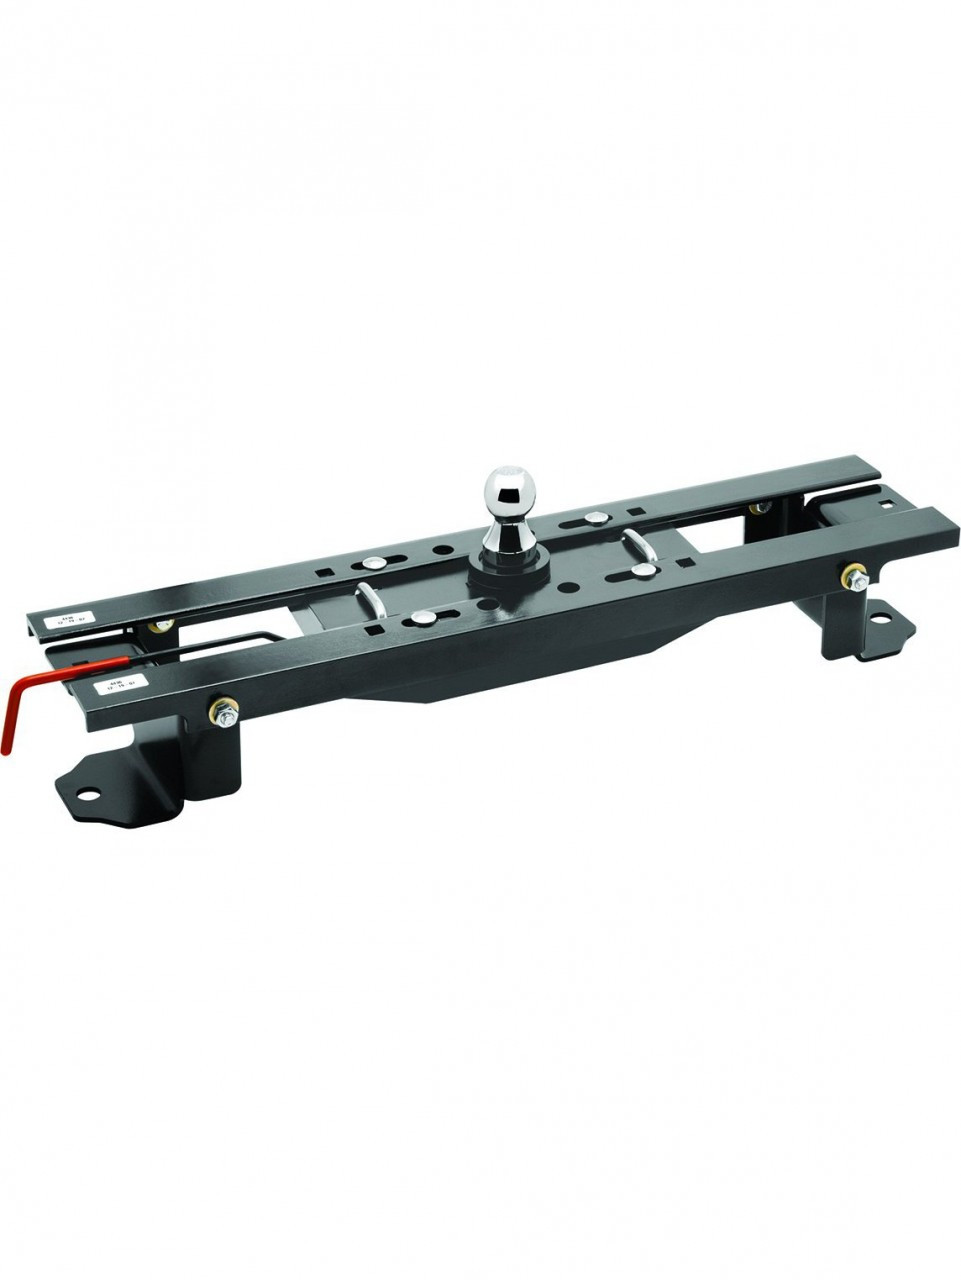 9475-36 --- BULLDOG 30K Under-Bed Gooseneck, 2007-2014 Toyota